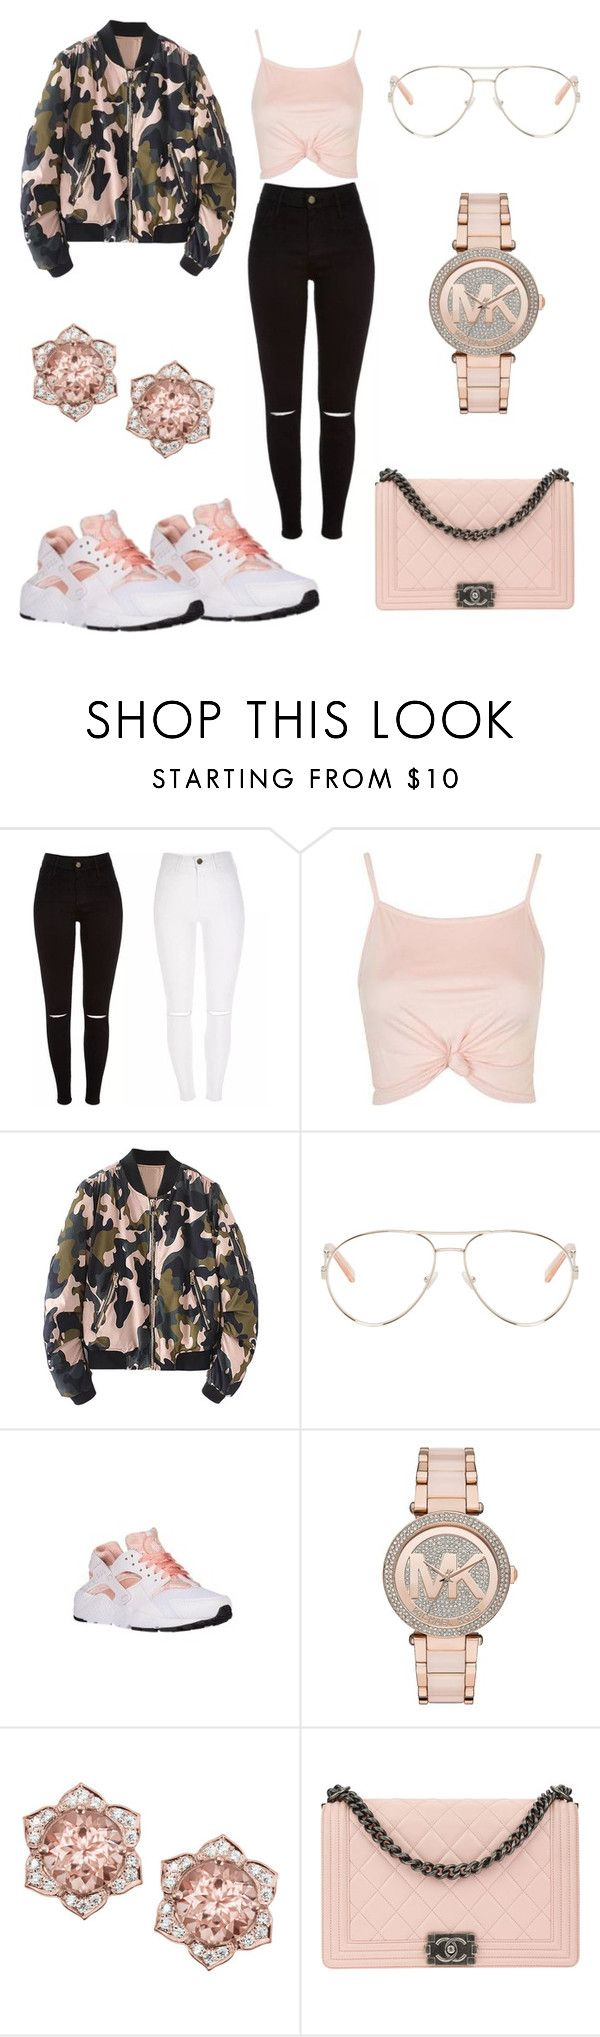 """""""Untitled #1090"""" by jwolley ❤ liked on Polyvore featuring Topshop, WithChic, Chloé, NIKE, Michael Kors and Chanel"""